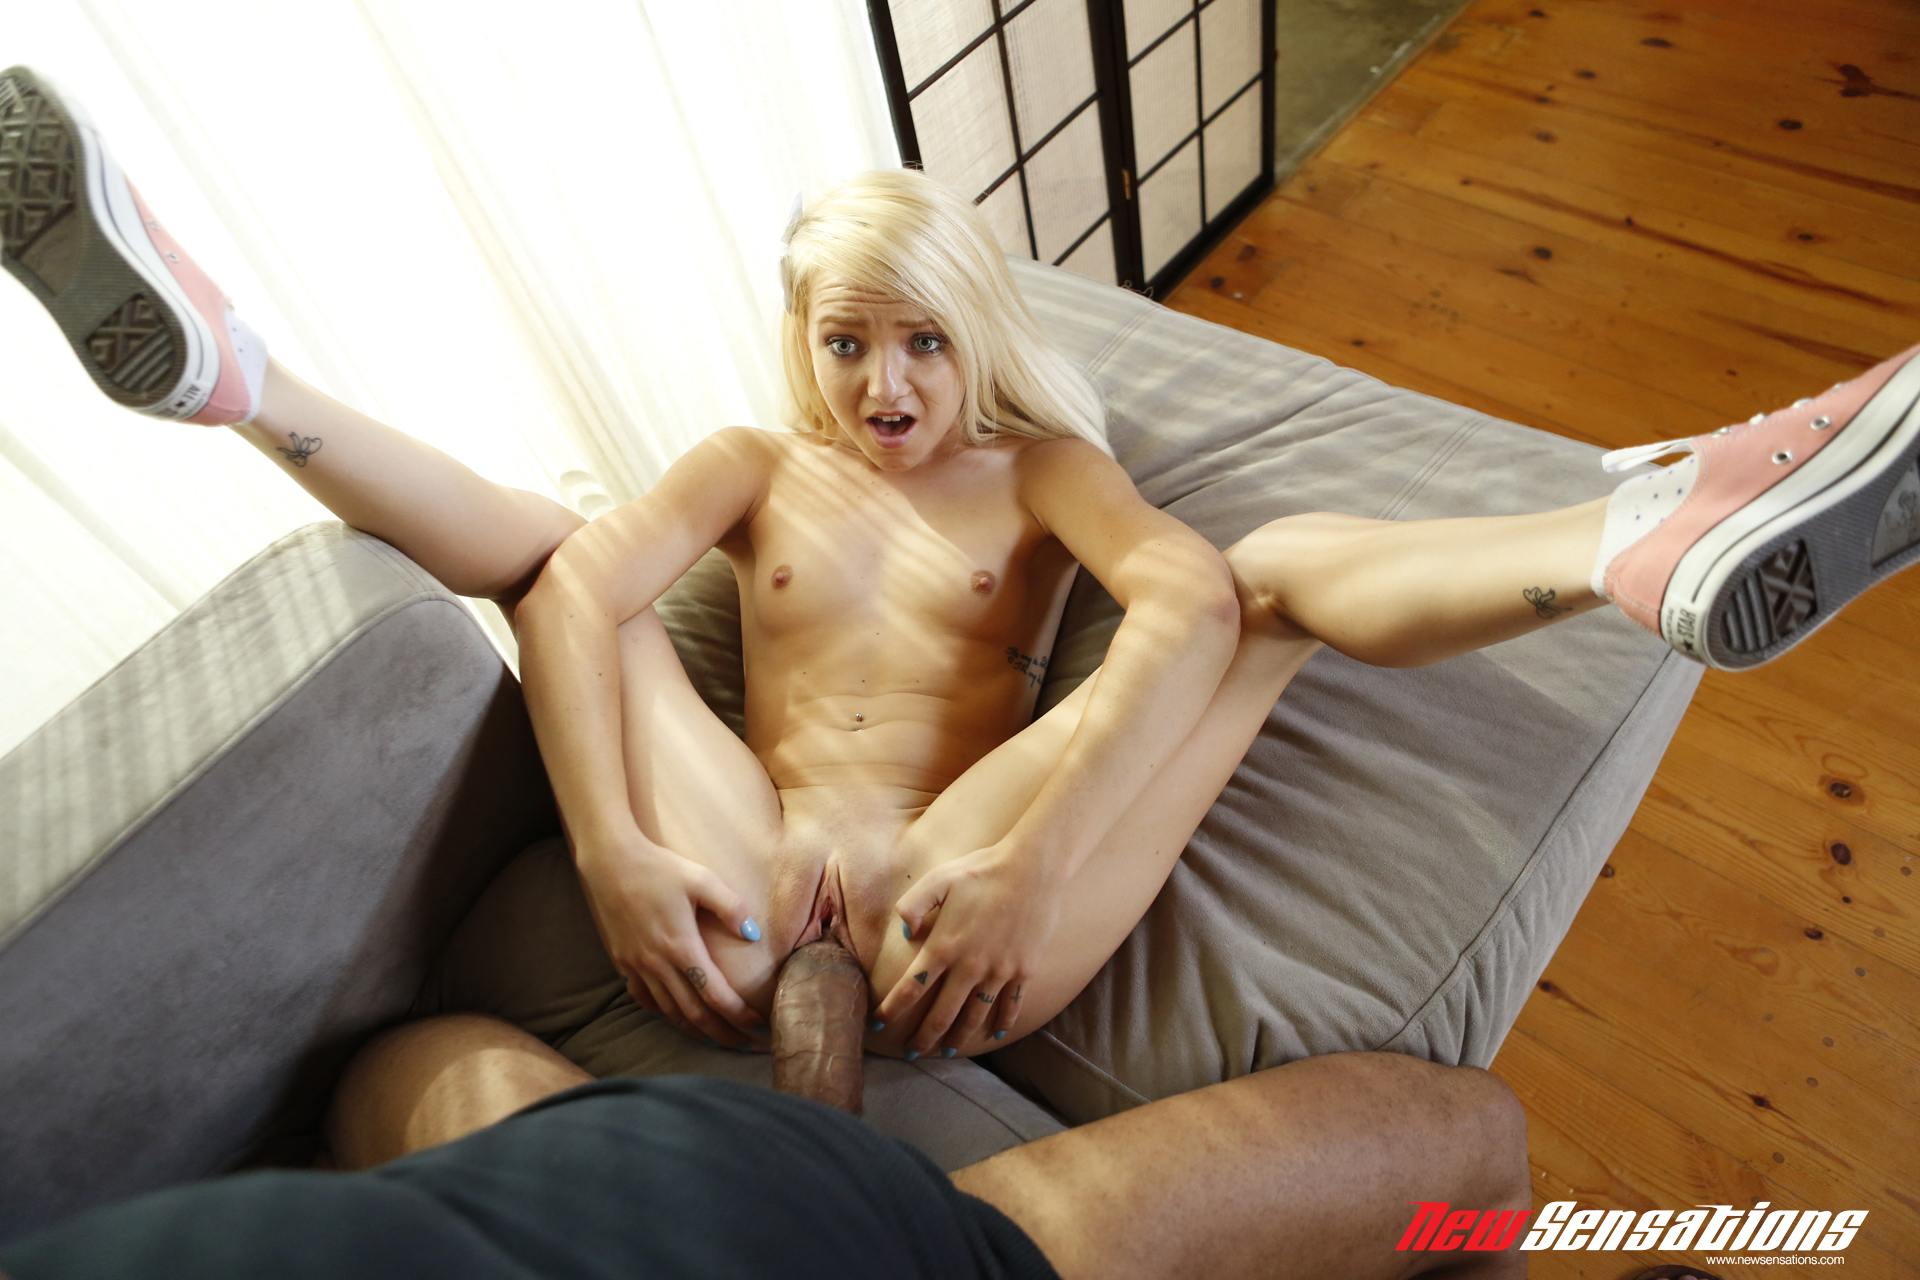 A hard pounding and messy creampie for busty cassidy banks 10